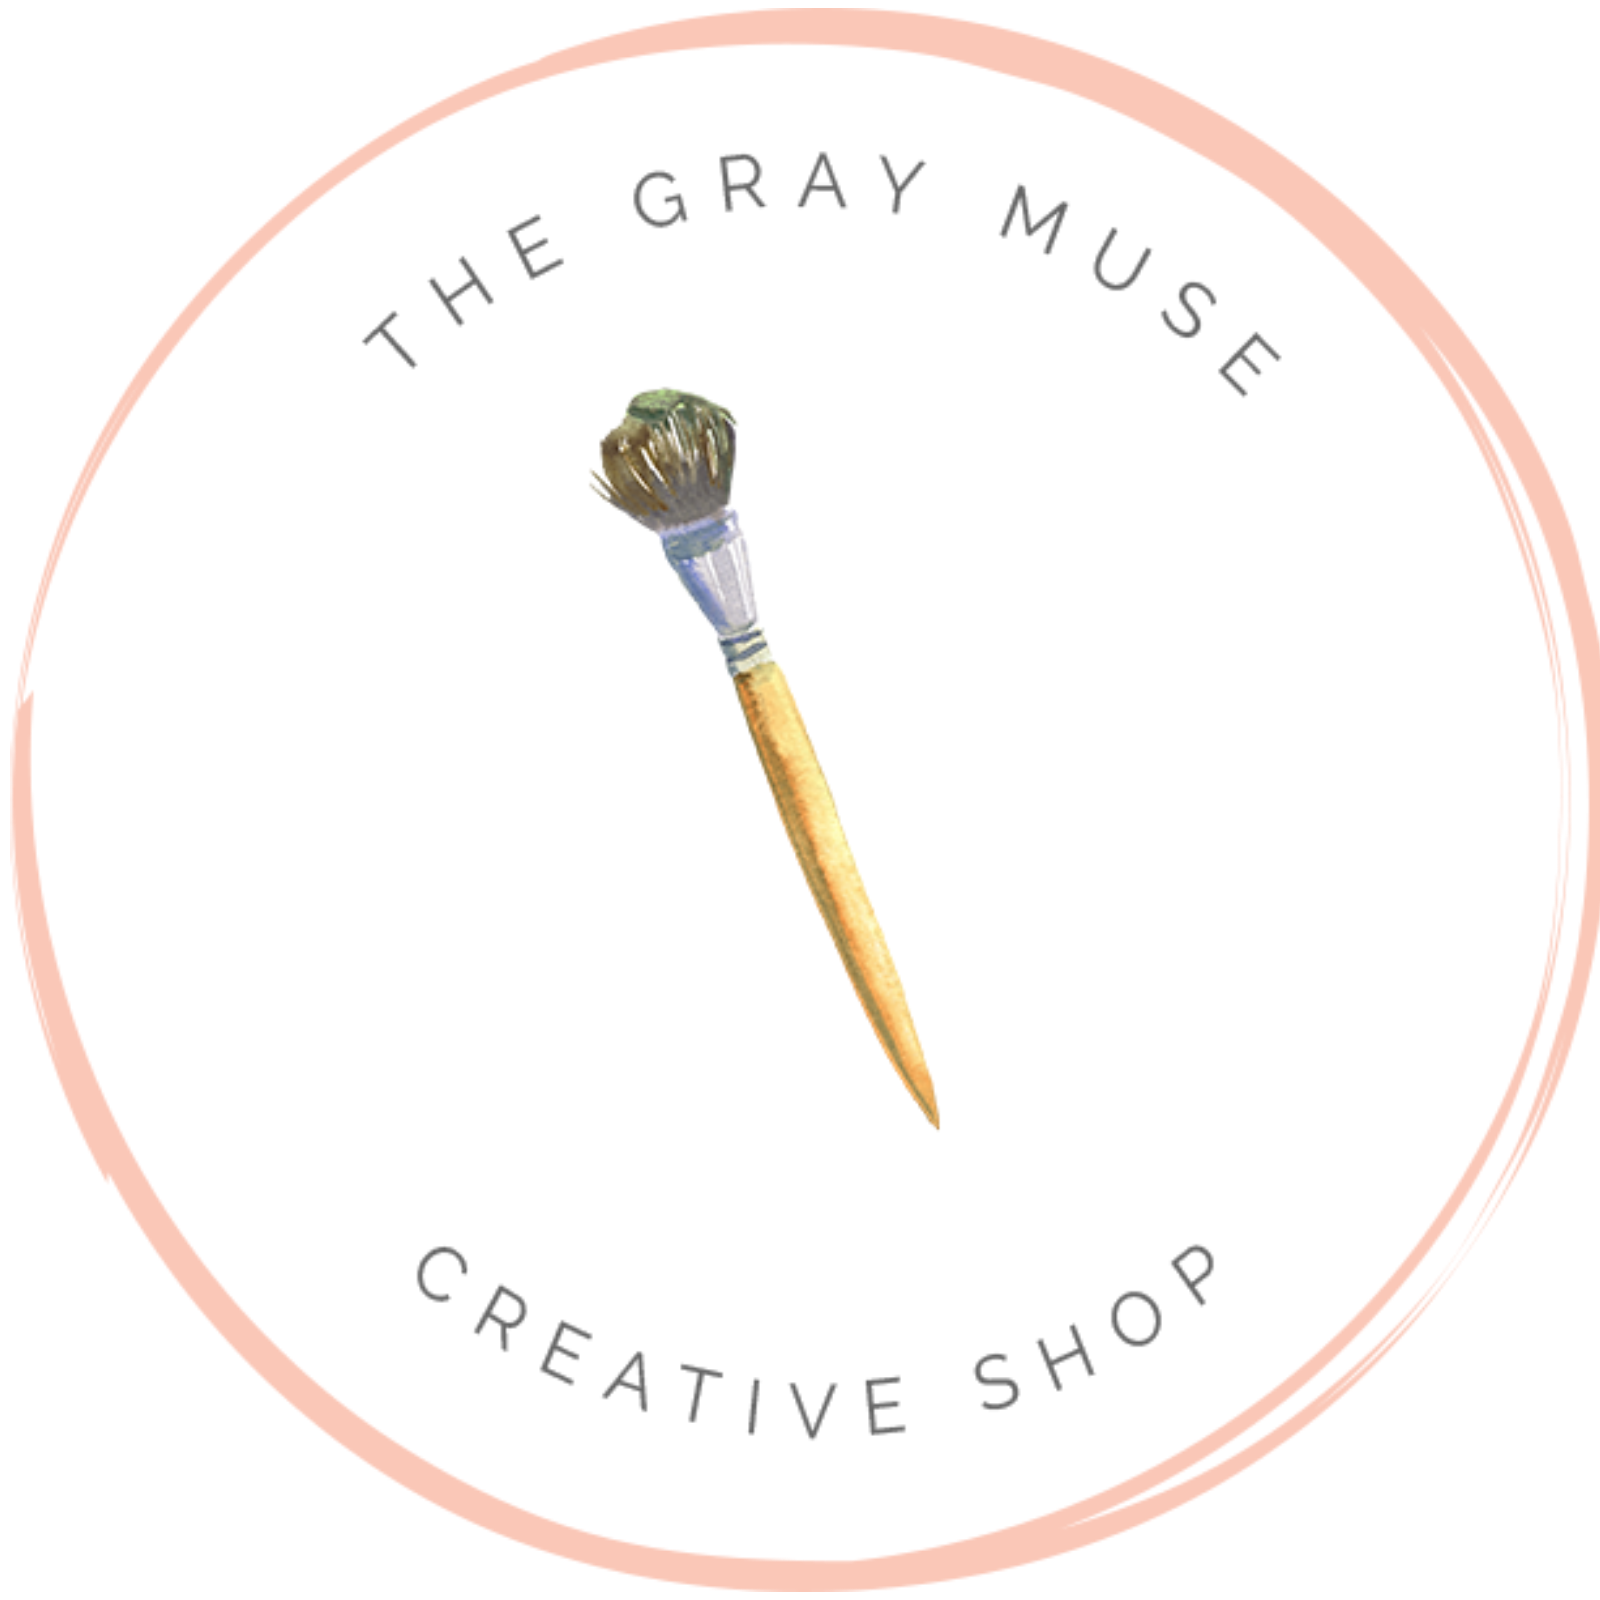 The Gray Muse